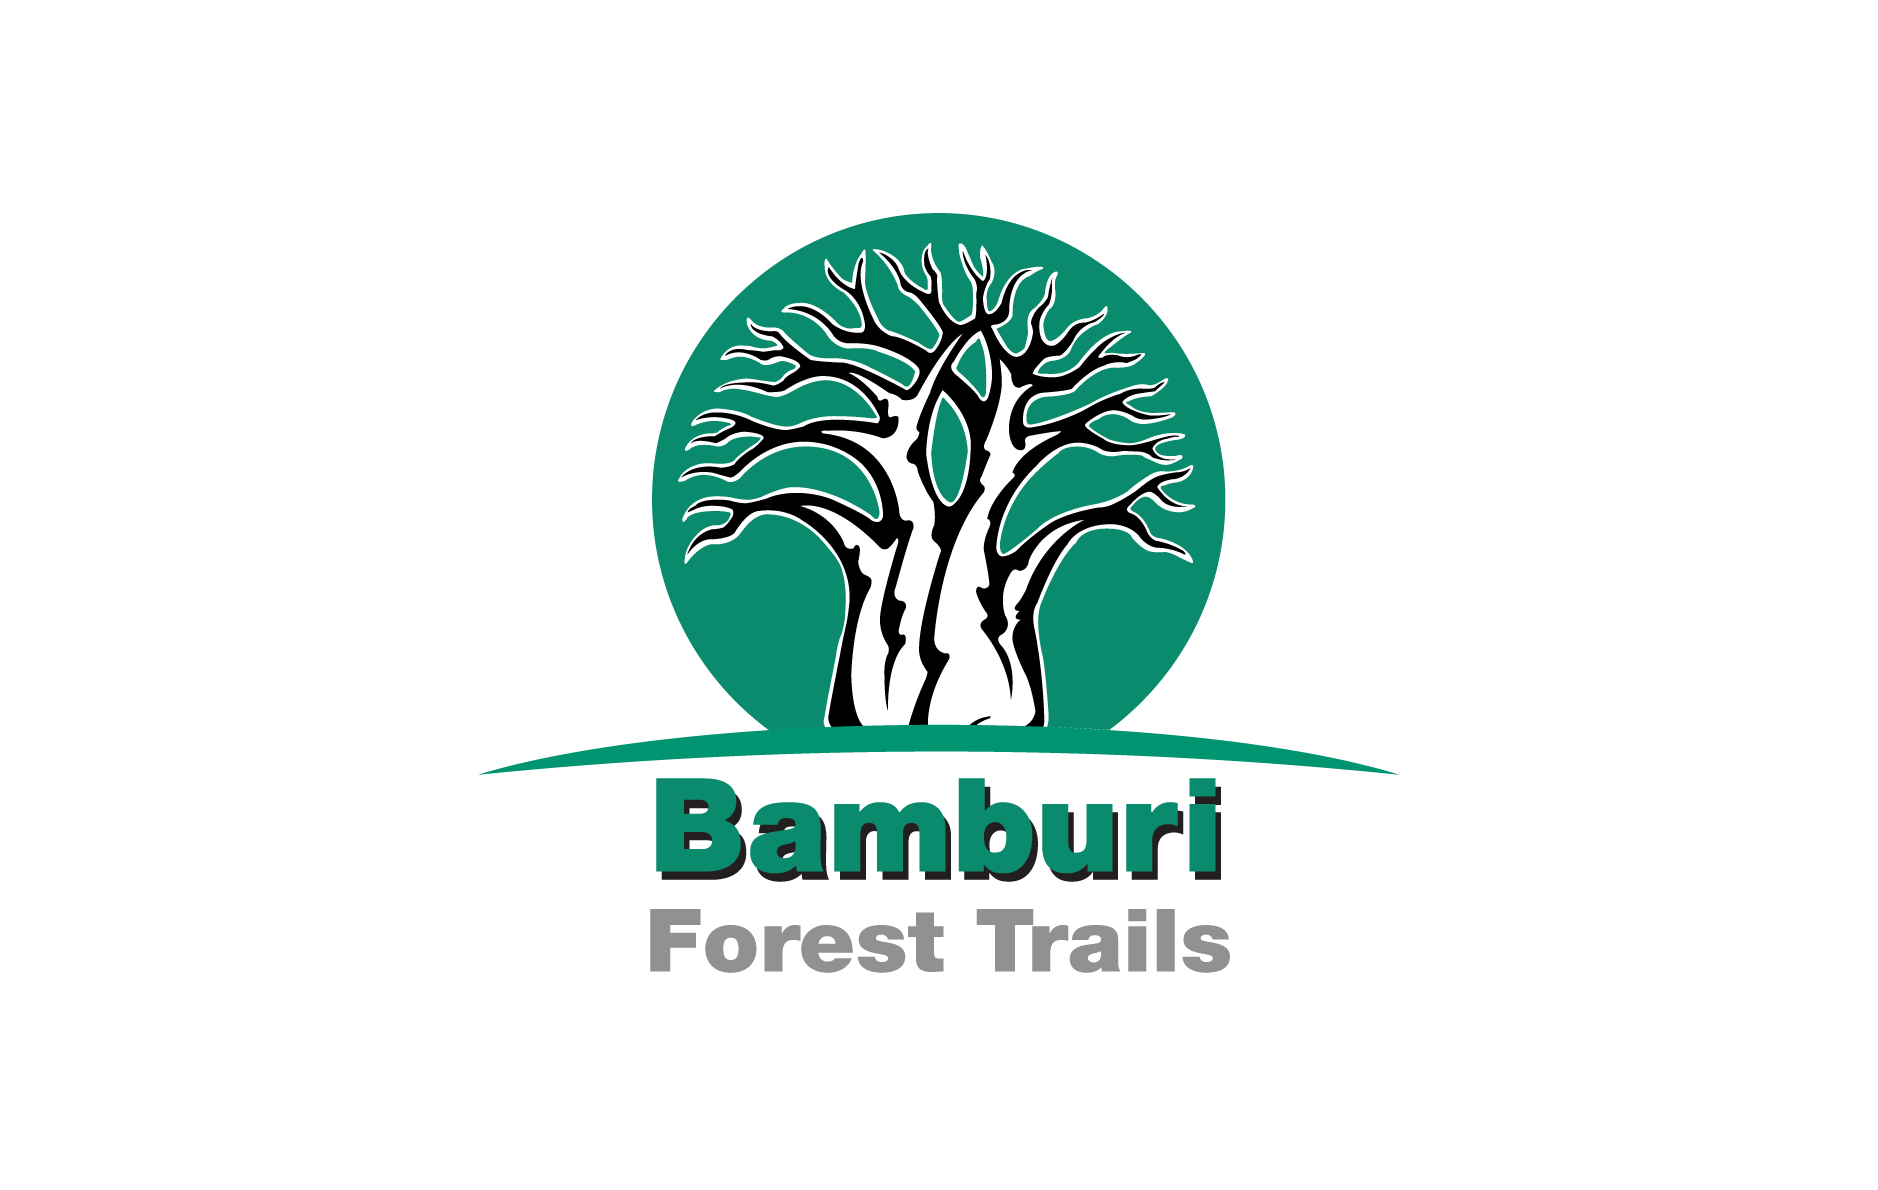 BAMBURI FOREST TRAILS